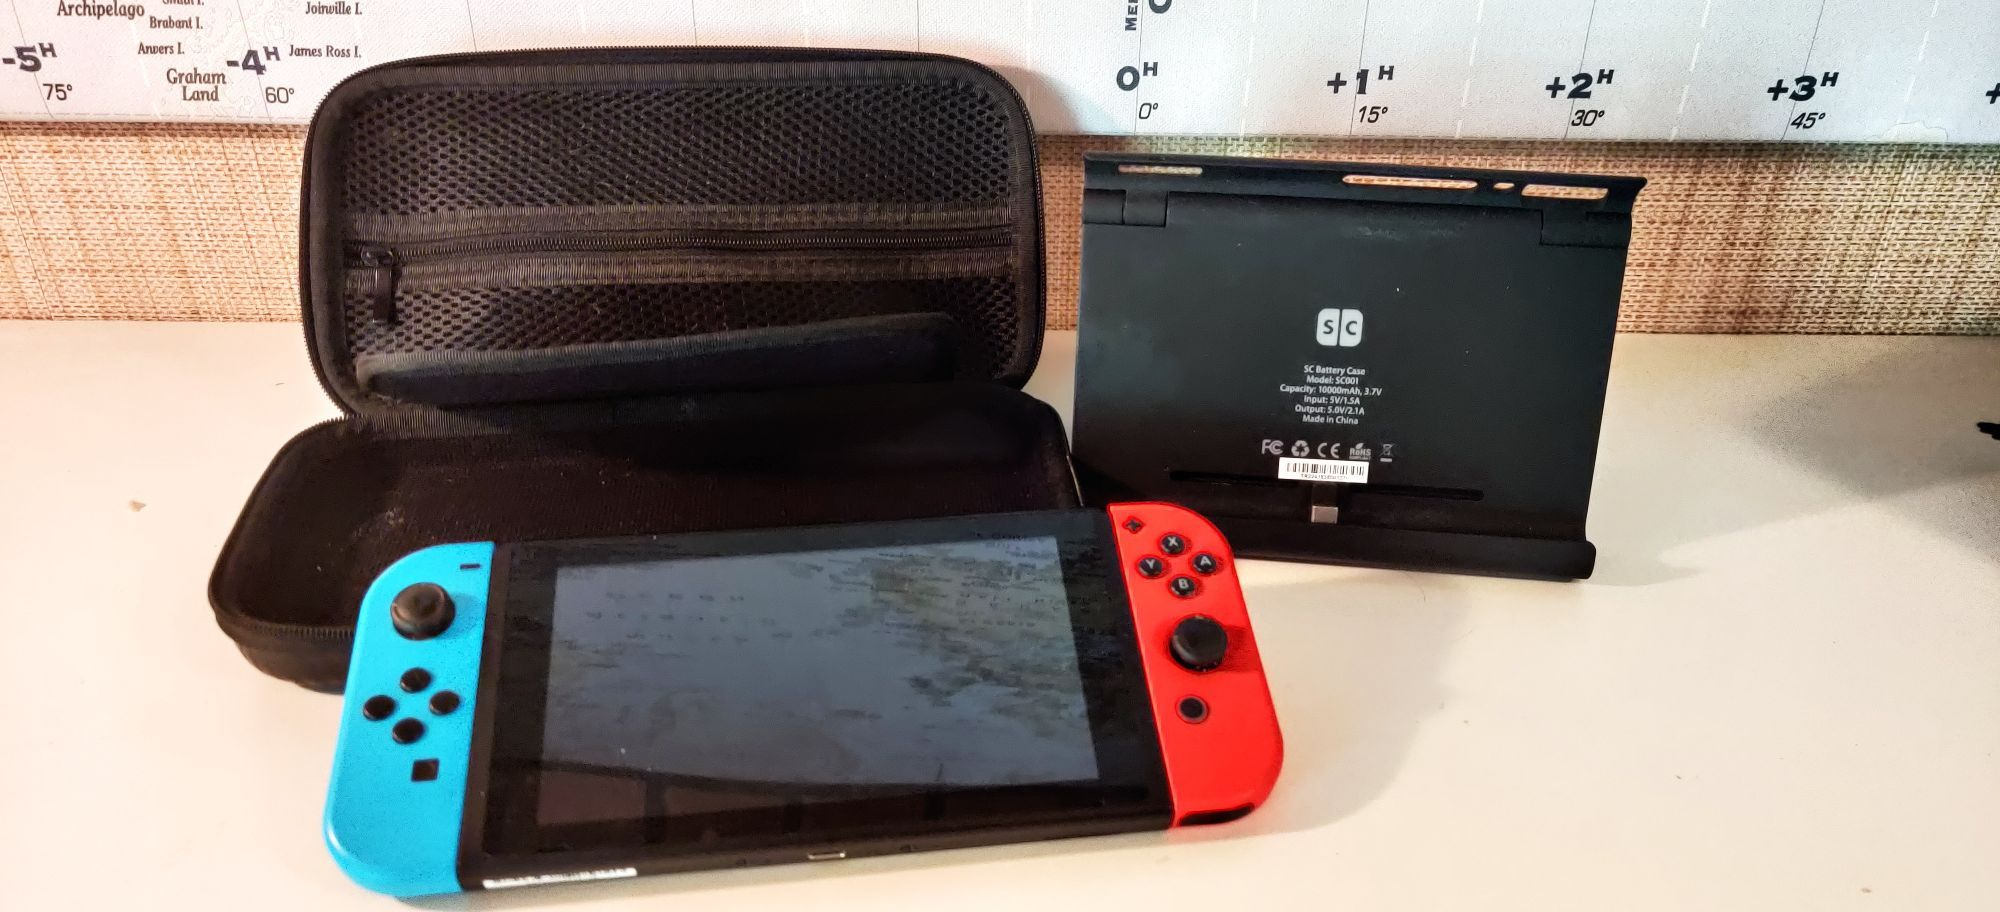 A Nintendo Switch next to a powerbank and a carrying case that's same size as Switch